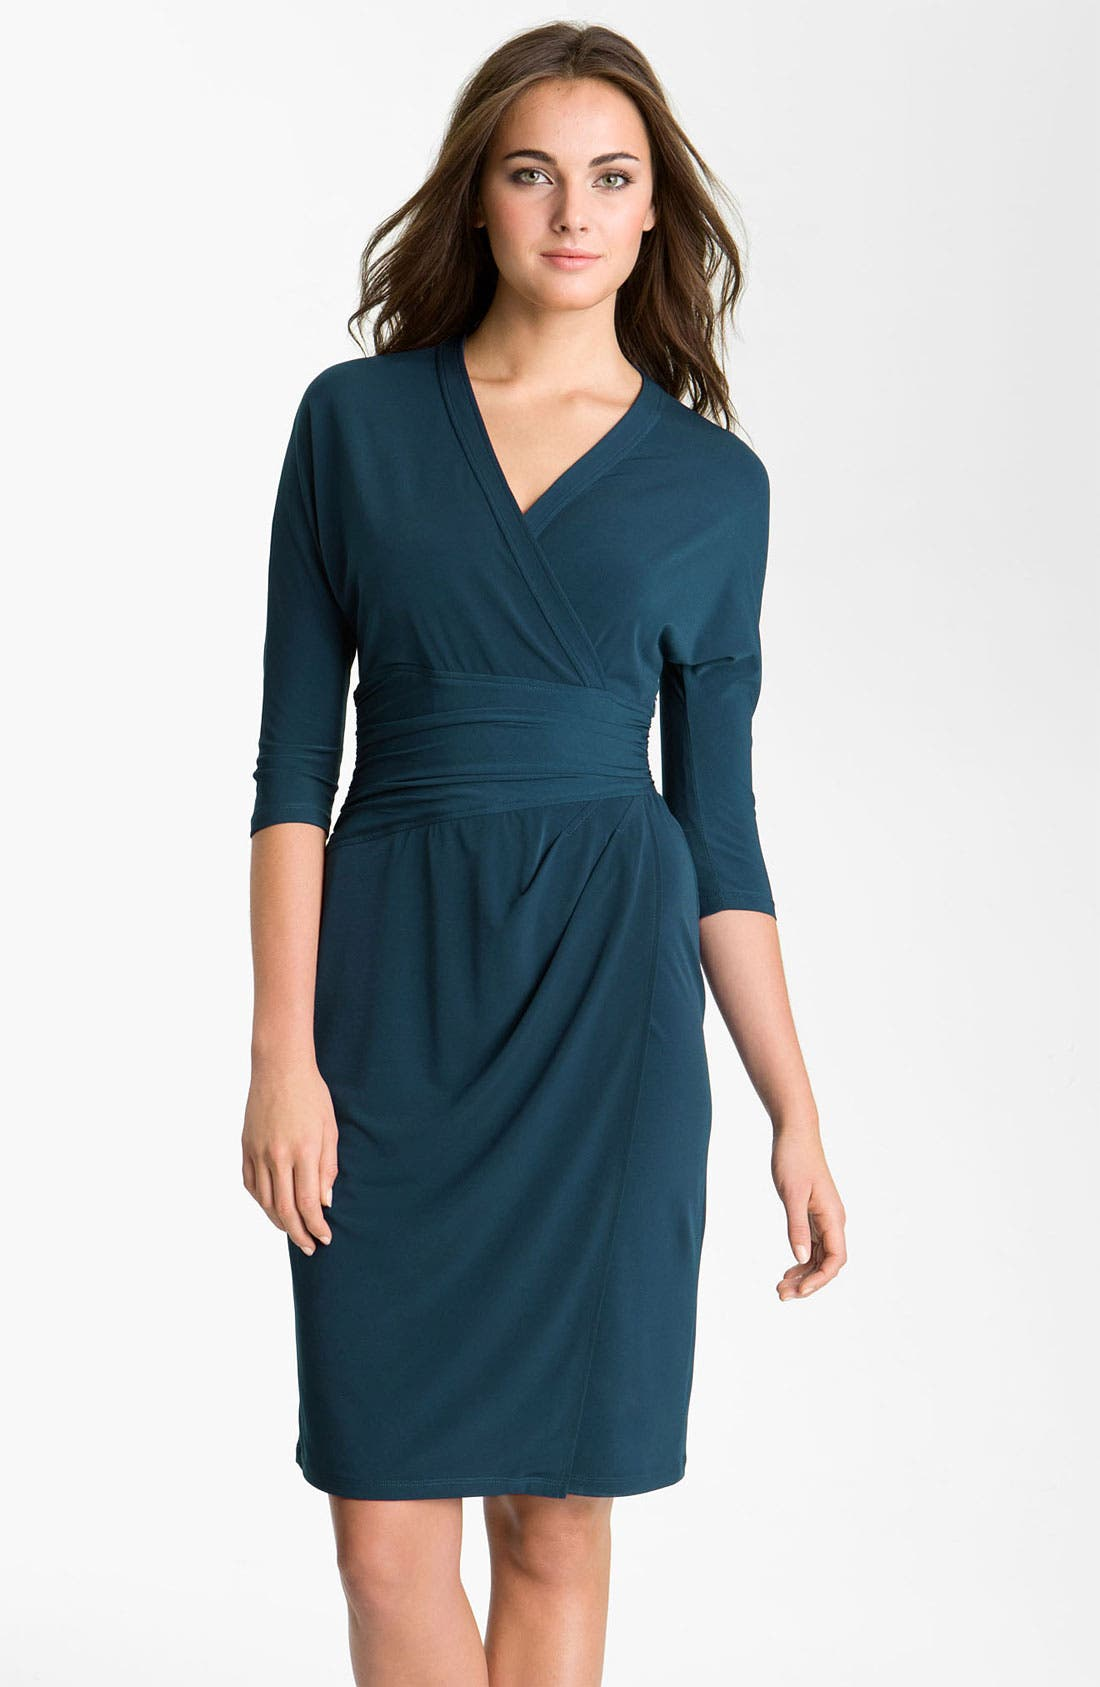 Alternate Image 1 Selected - Suzi Chin for Maggy Boutique Elbow Sleeve Faux Wrap Dress